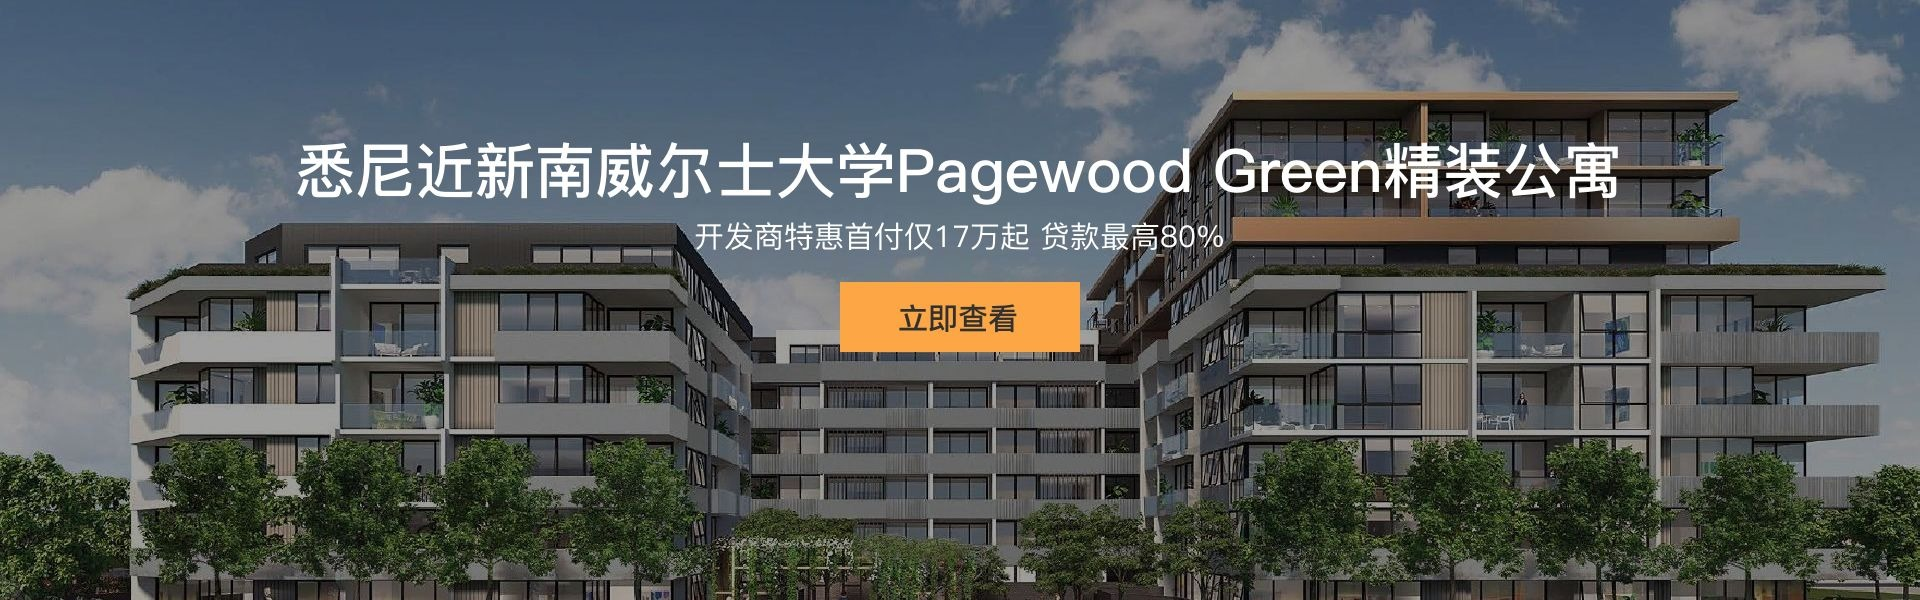 悉尼近新南威尔士大学Pagewood Green精装公寓